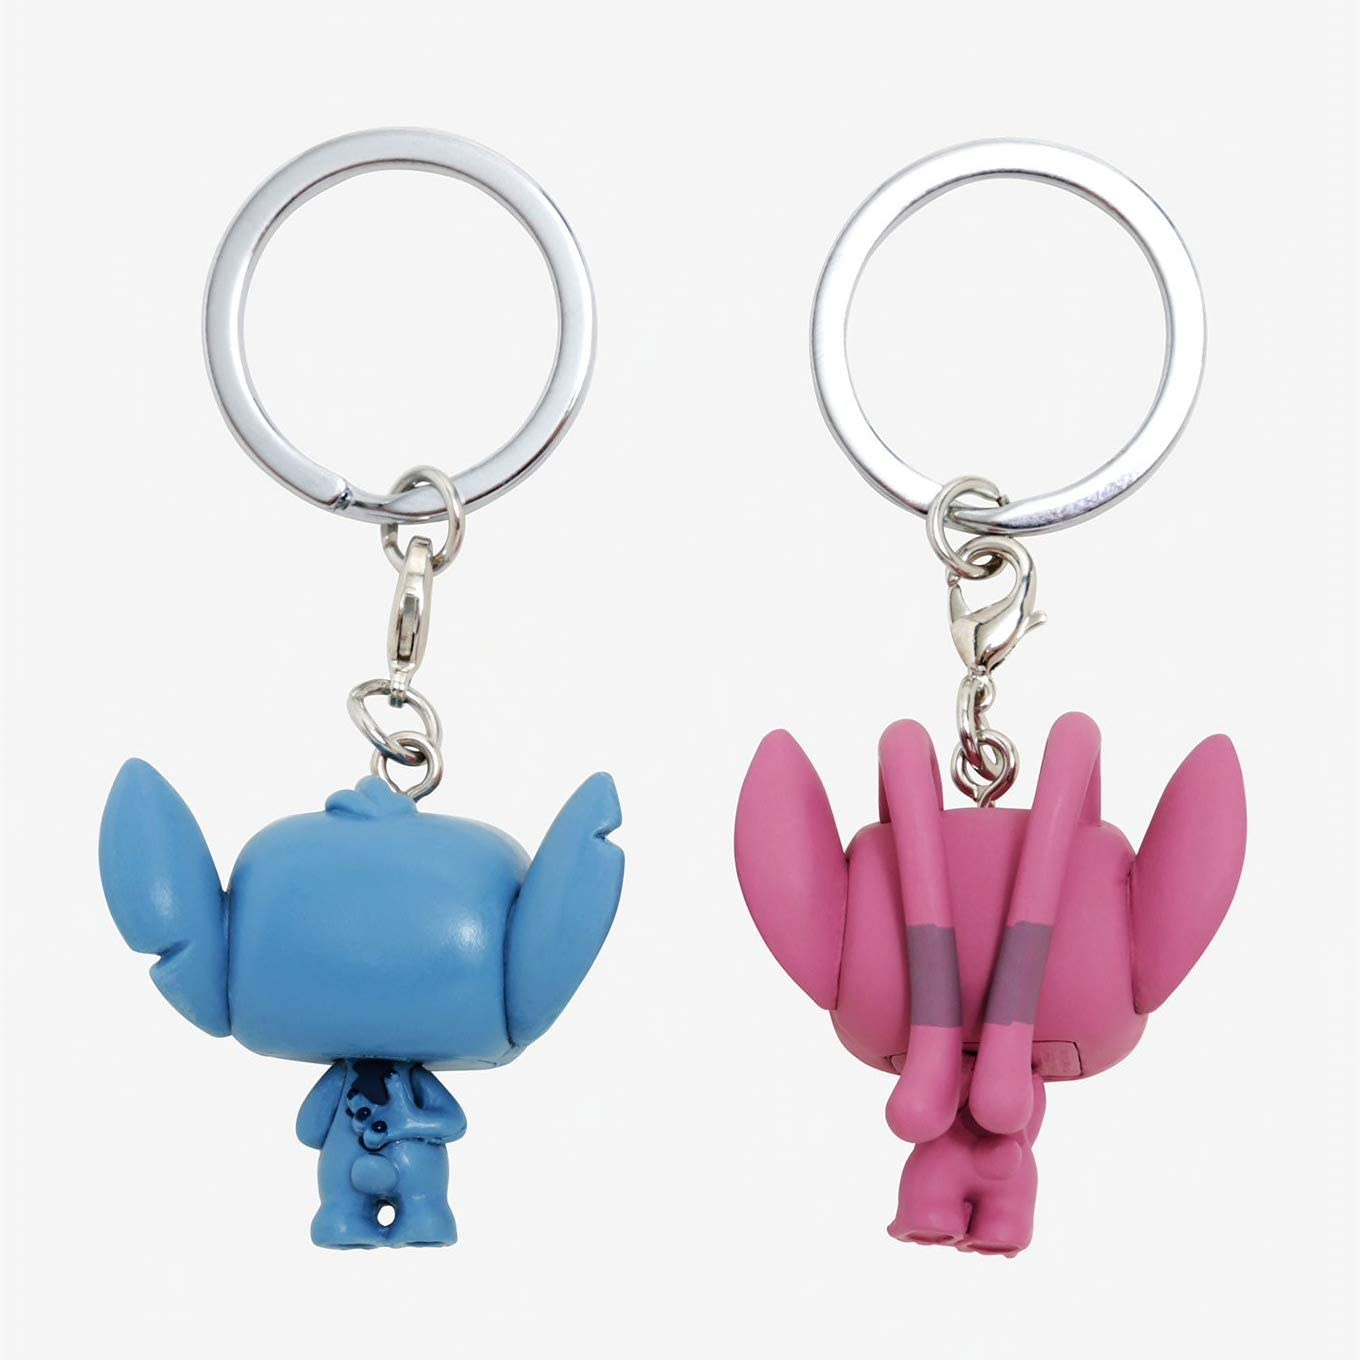 Funko Pop! Keychain: Lilo & Stitch & Angel 2 Pack Toy, Multicolor: Toys & Games